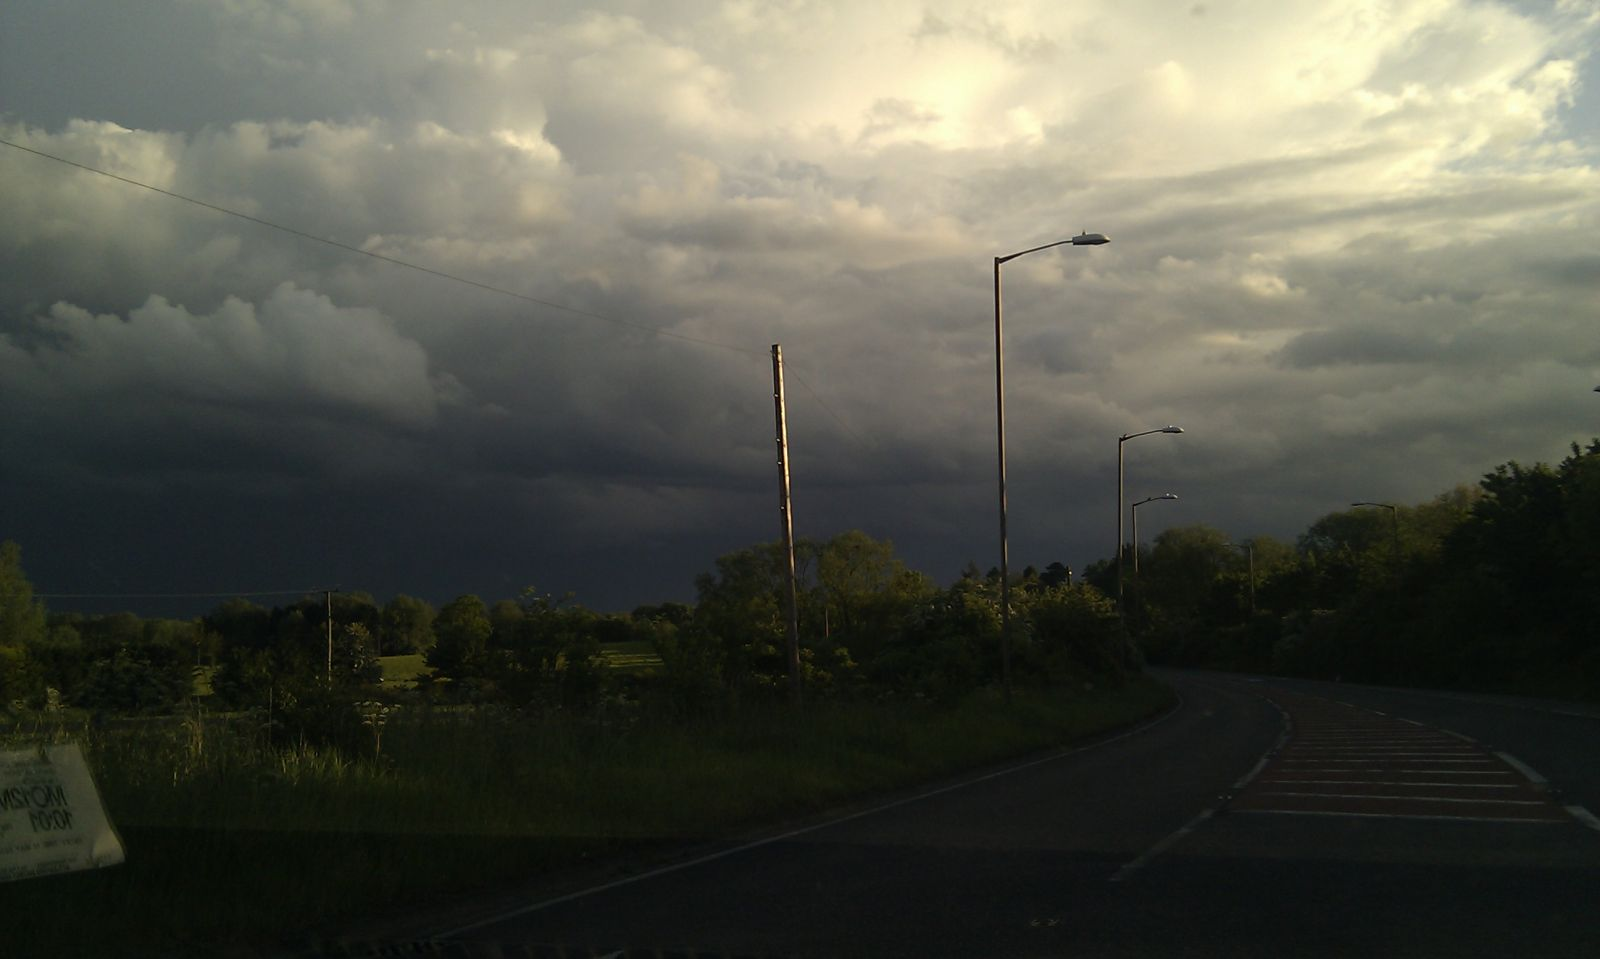 View towards thunderstorms in South Essex  - 1